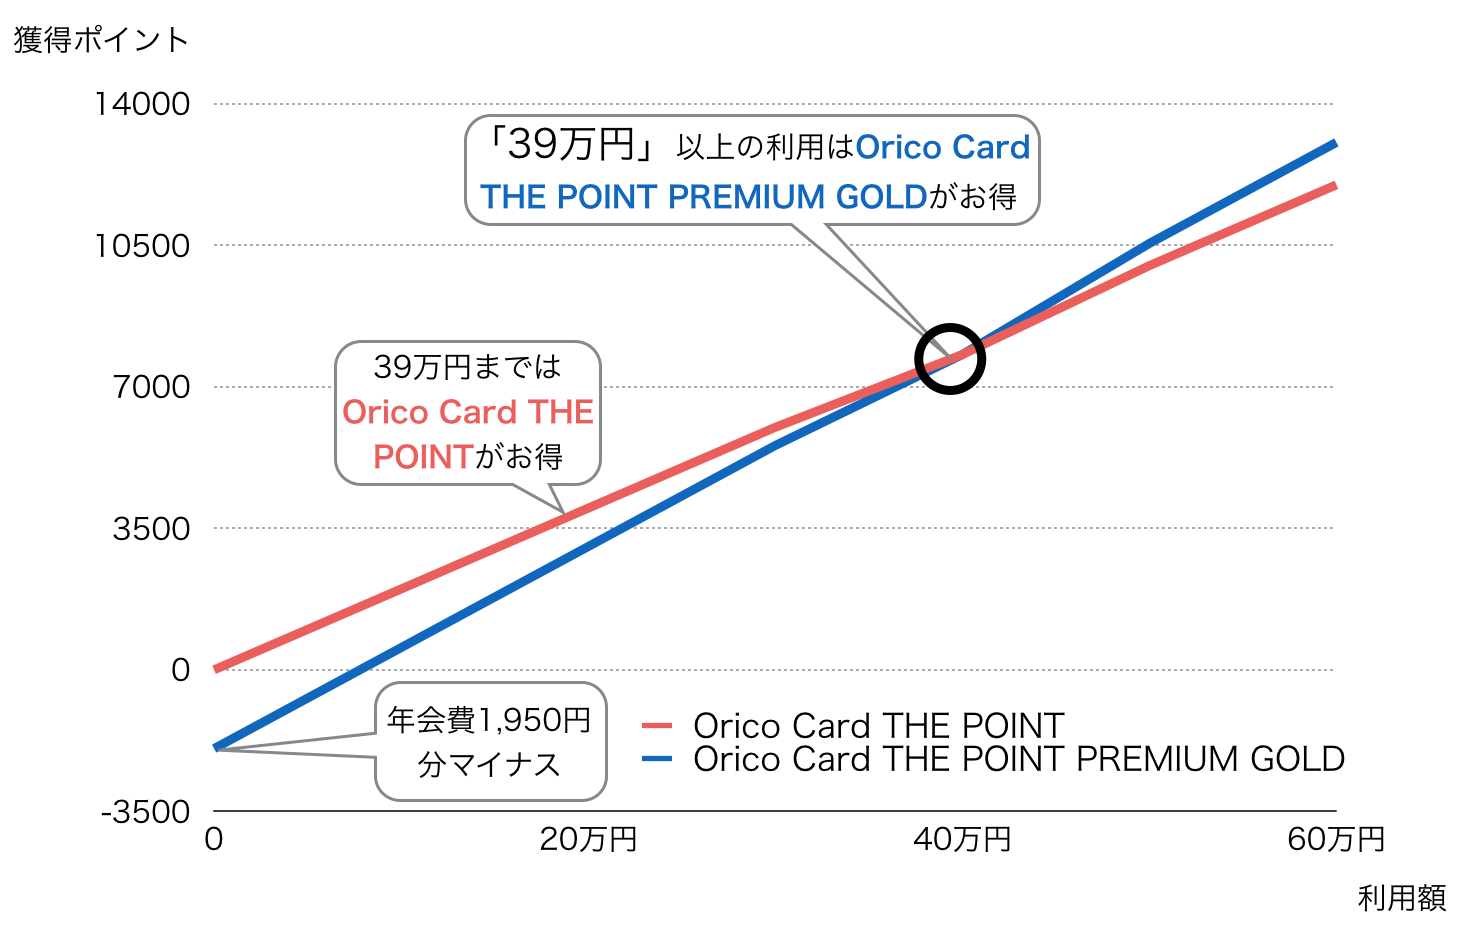 Orico Card THE POINT PREMIUM GOLD 損益分岐点1